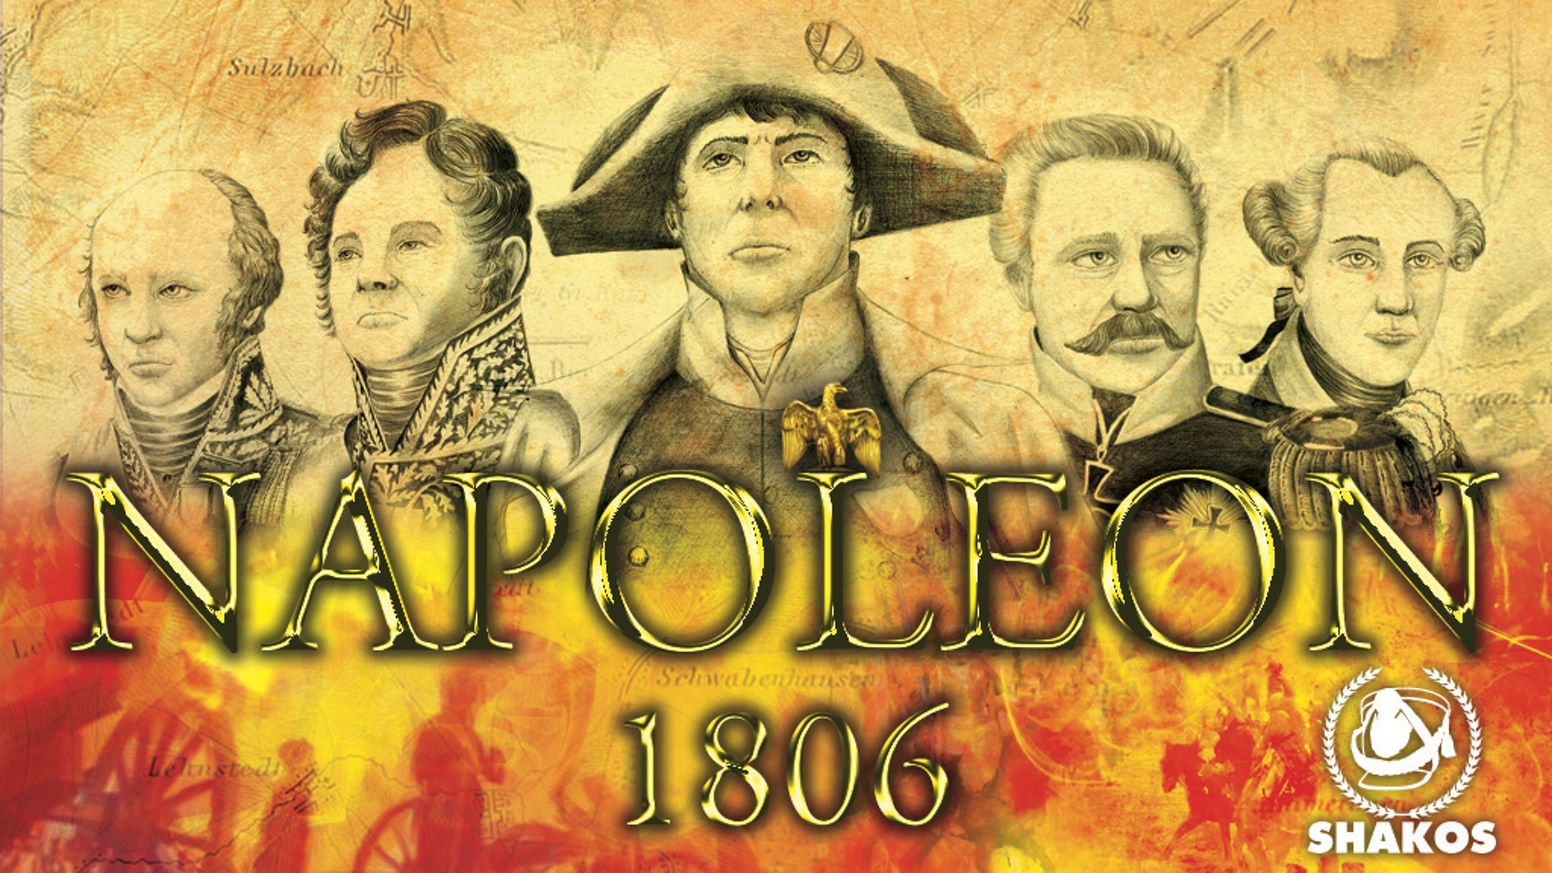 Rewrite history - Napoléon 1806 - the 1806 prussian campaign - boardgame  for two players.